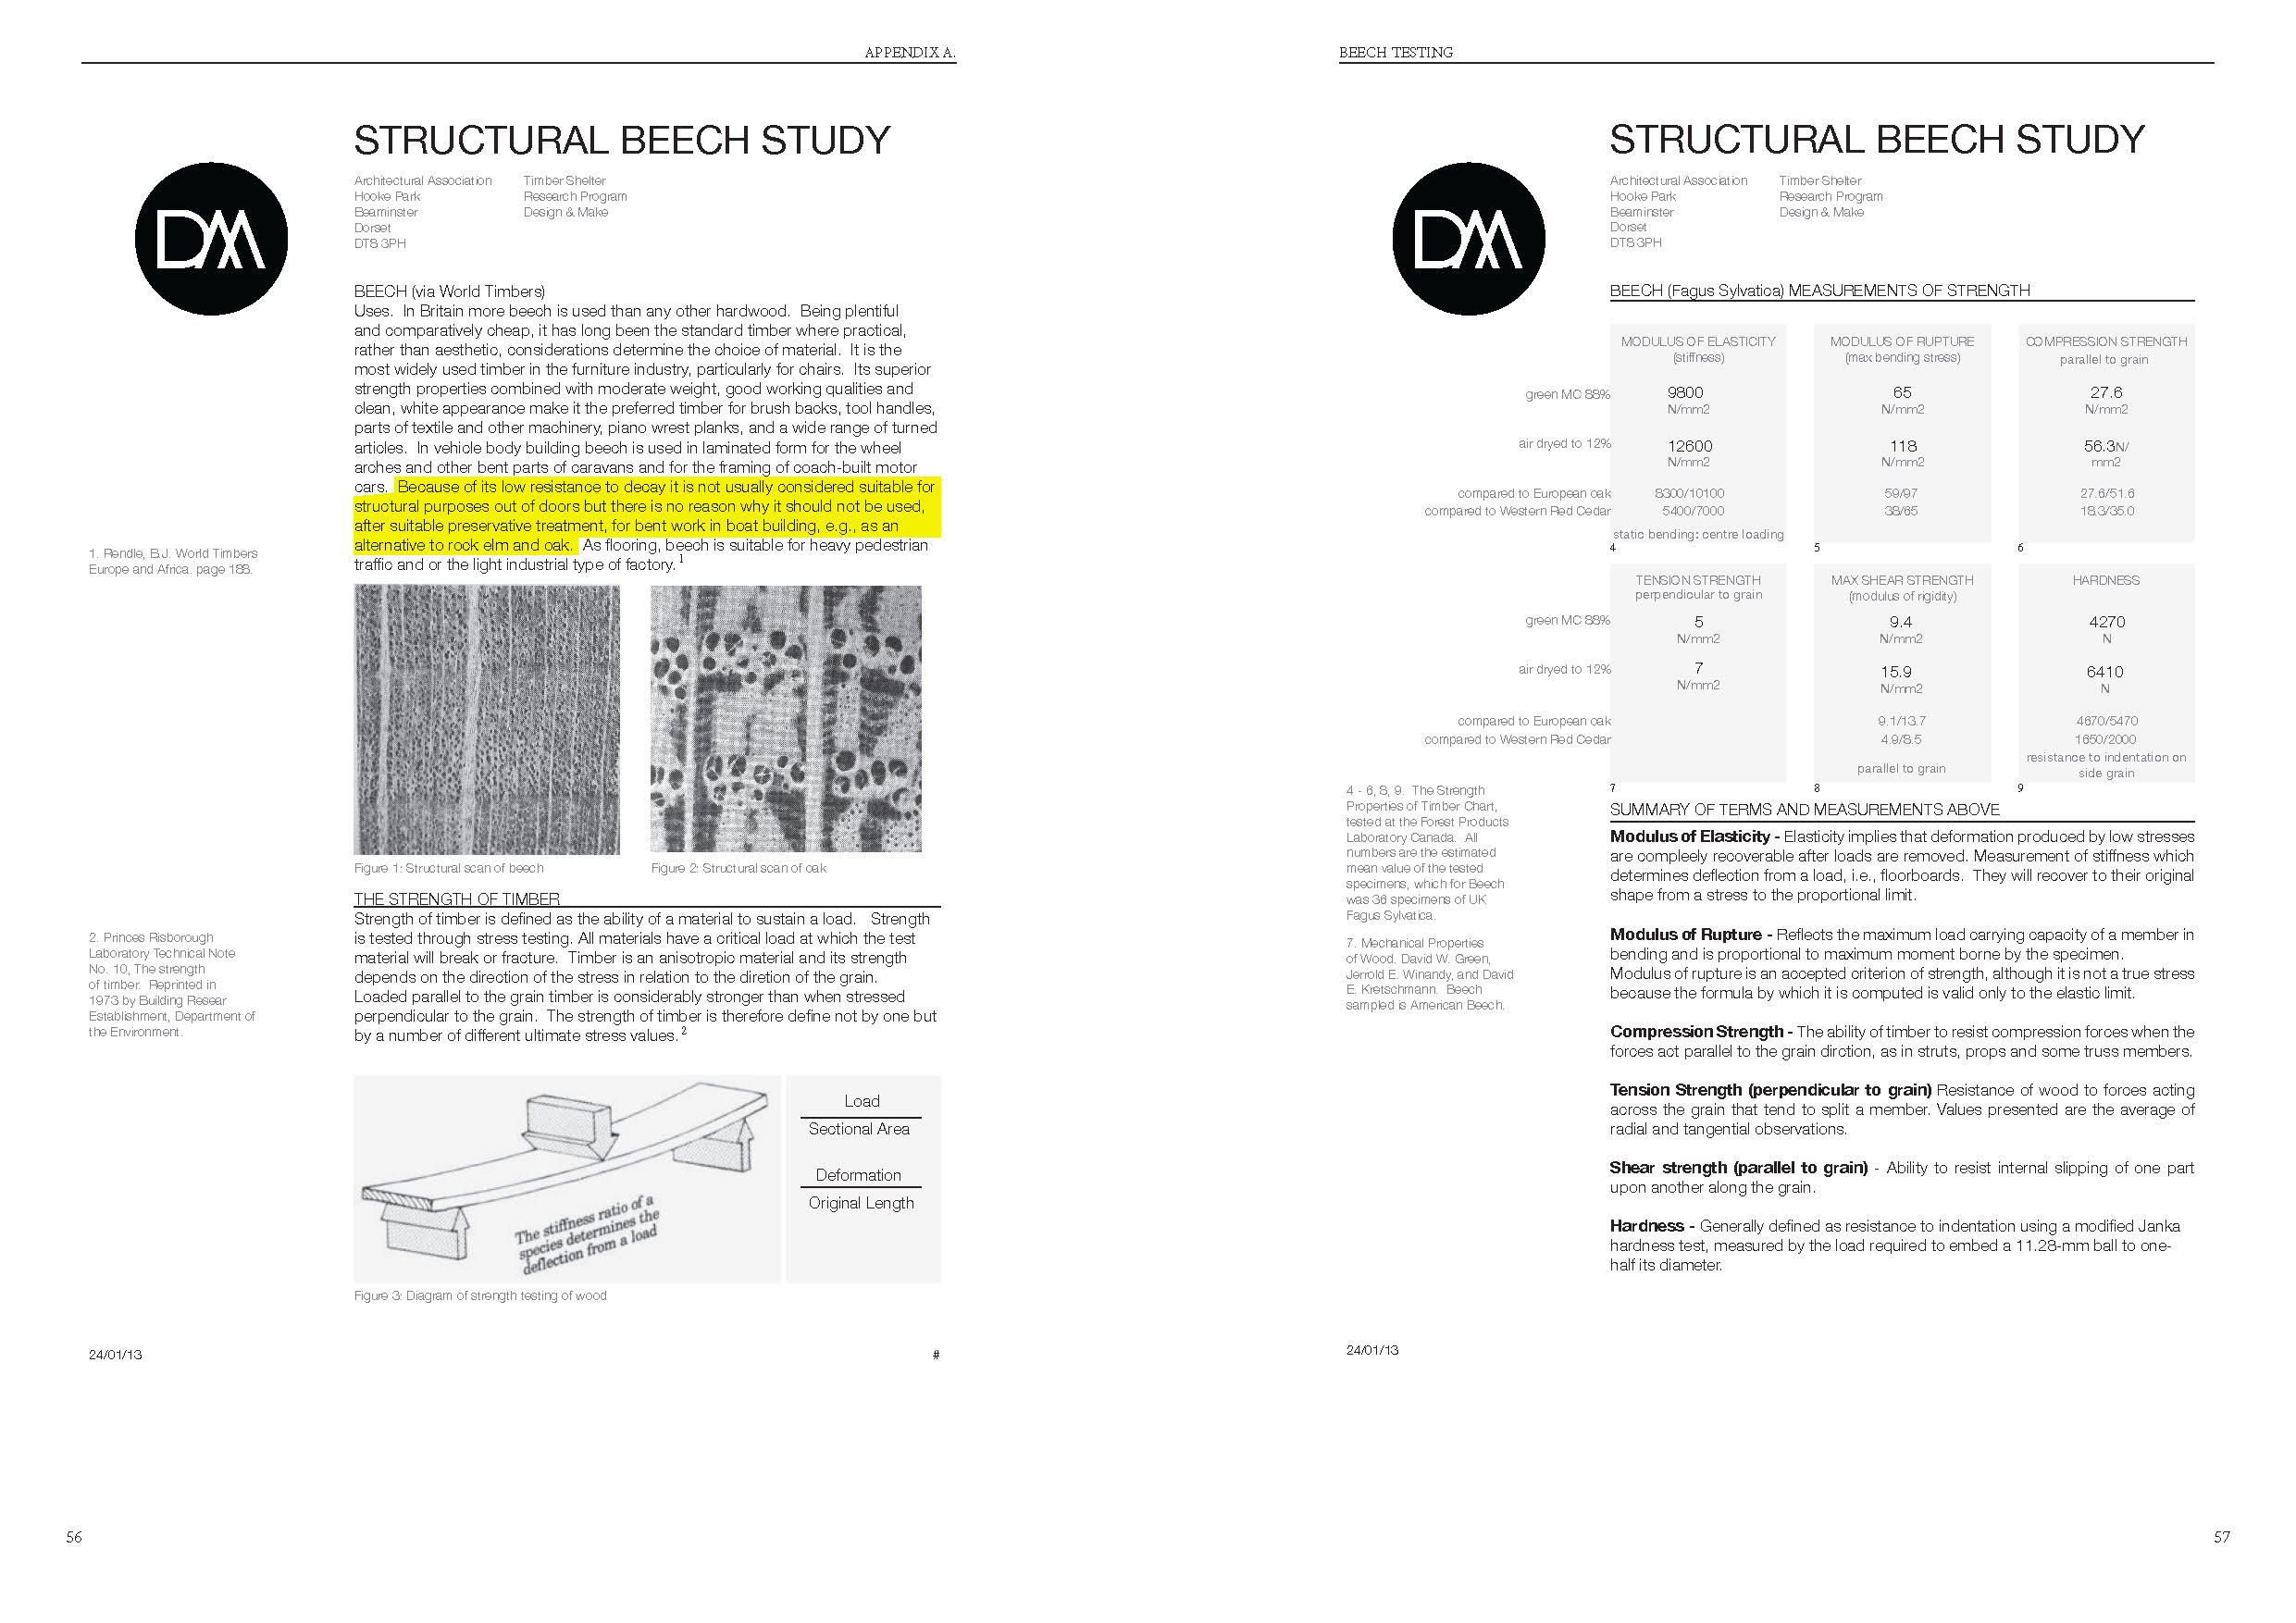 130131_Material SuccessionFORSUBMITTAL_Page_33.jpg